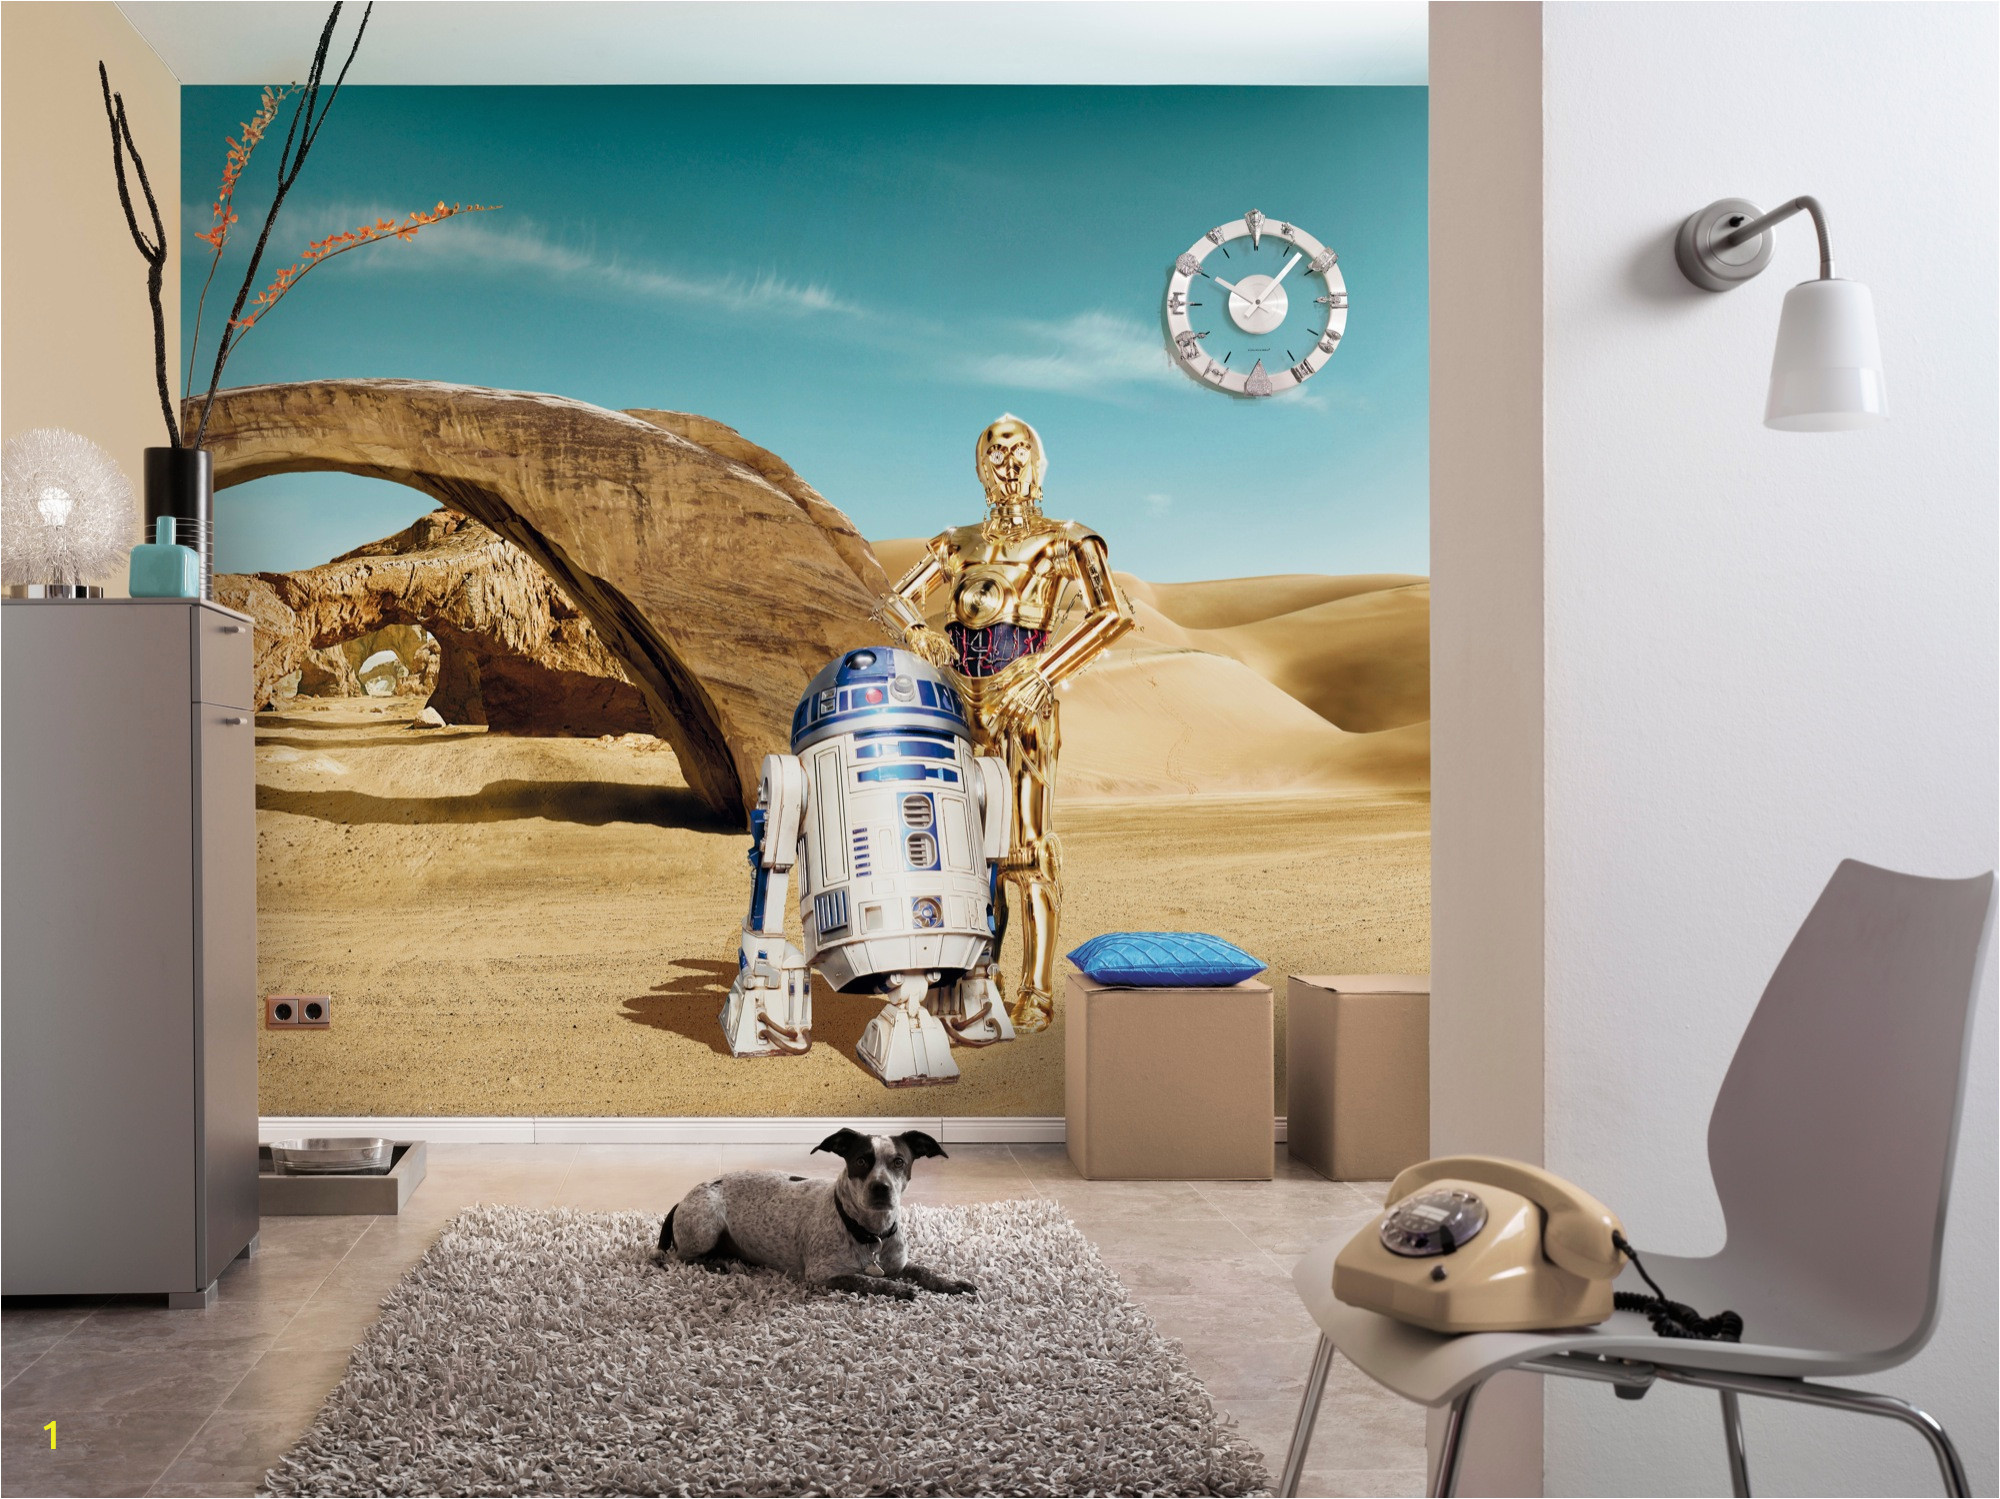 8 484 star wars lost droids interieur i